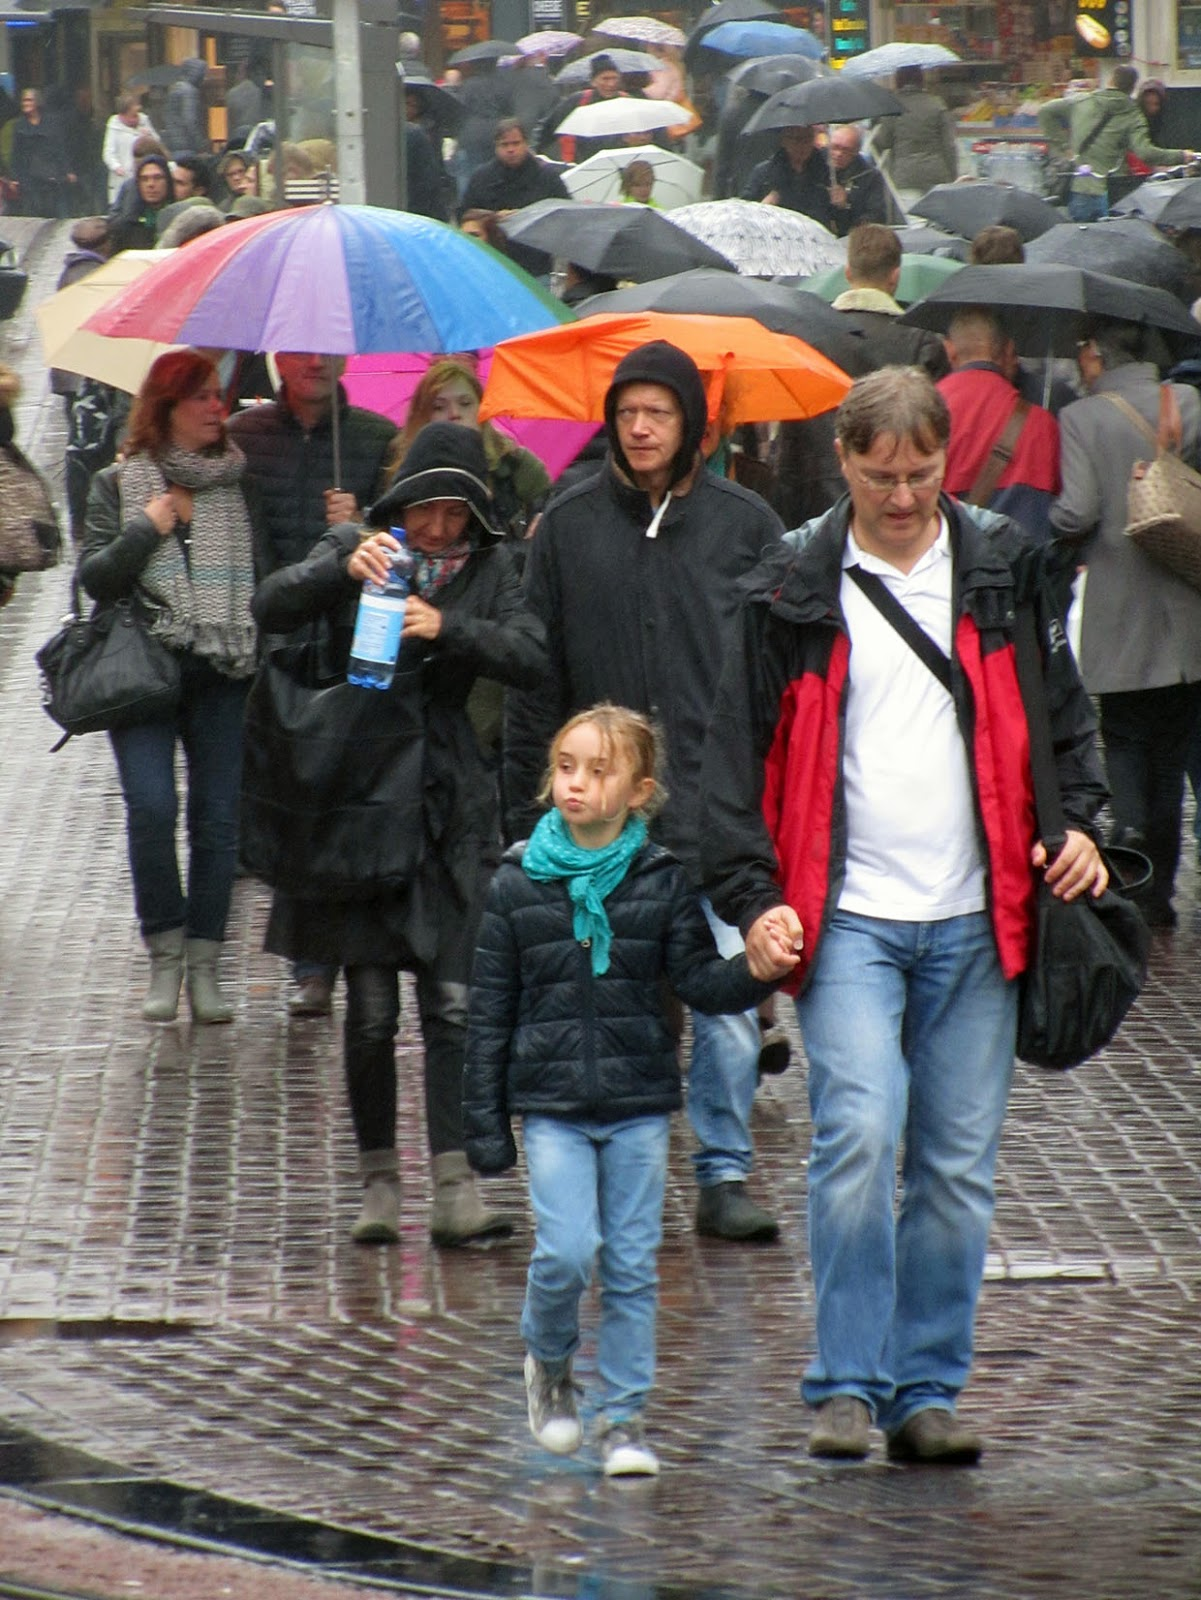 lots of people in the rain